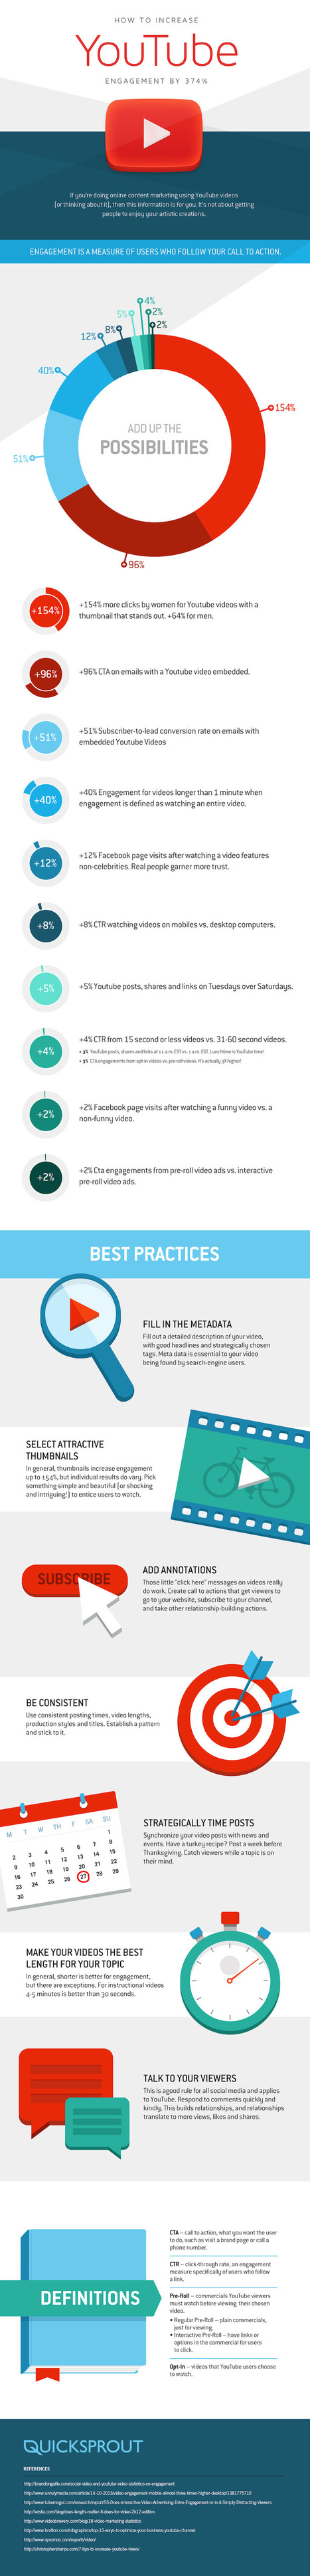 How to Increase Your YouTube Engagement by 374% [Infographic ] | Integrated Marketing Technologist | Scoop.it